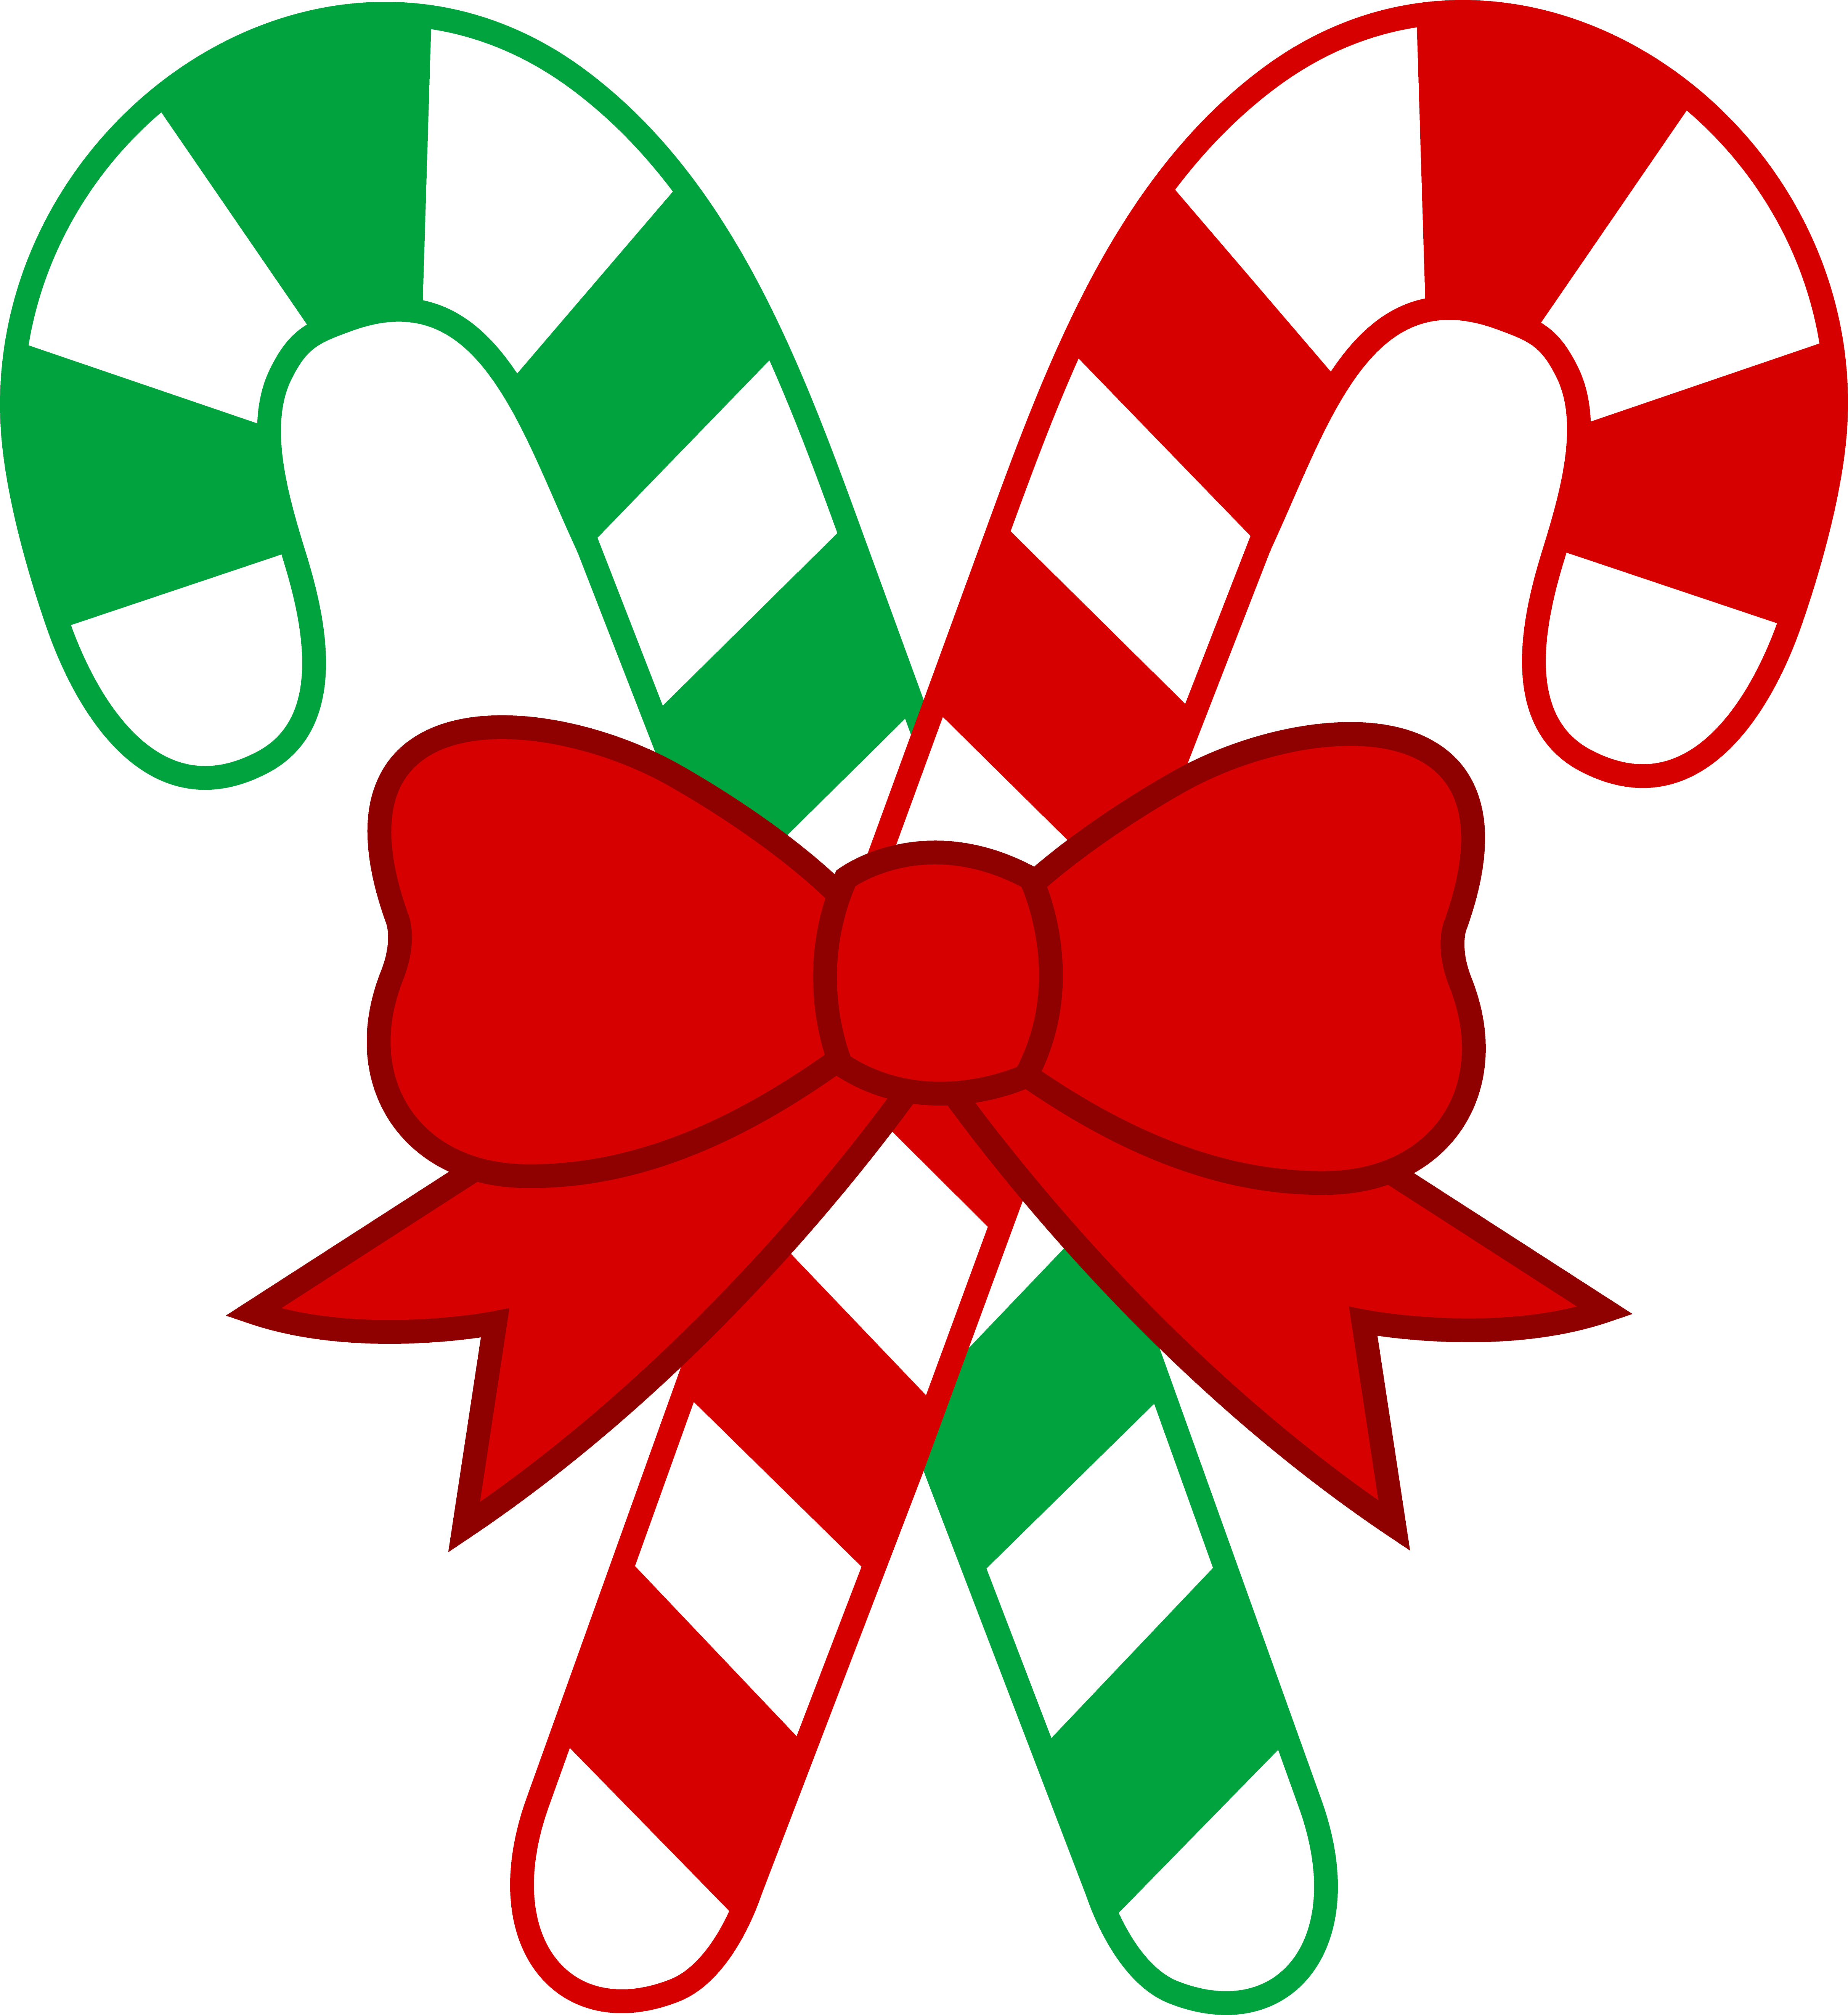 Holidays Christmas Candy Clipart Wallpap-Holidays Christmas Candy Clipart Wallpaper - 4847x5284 pixel-1